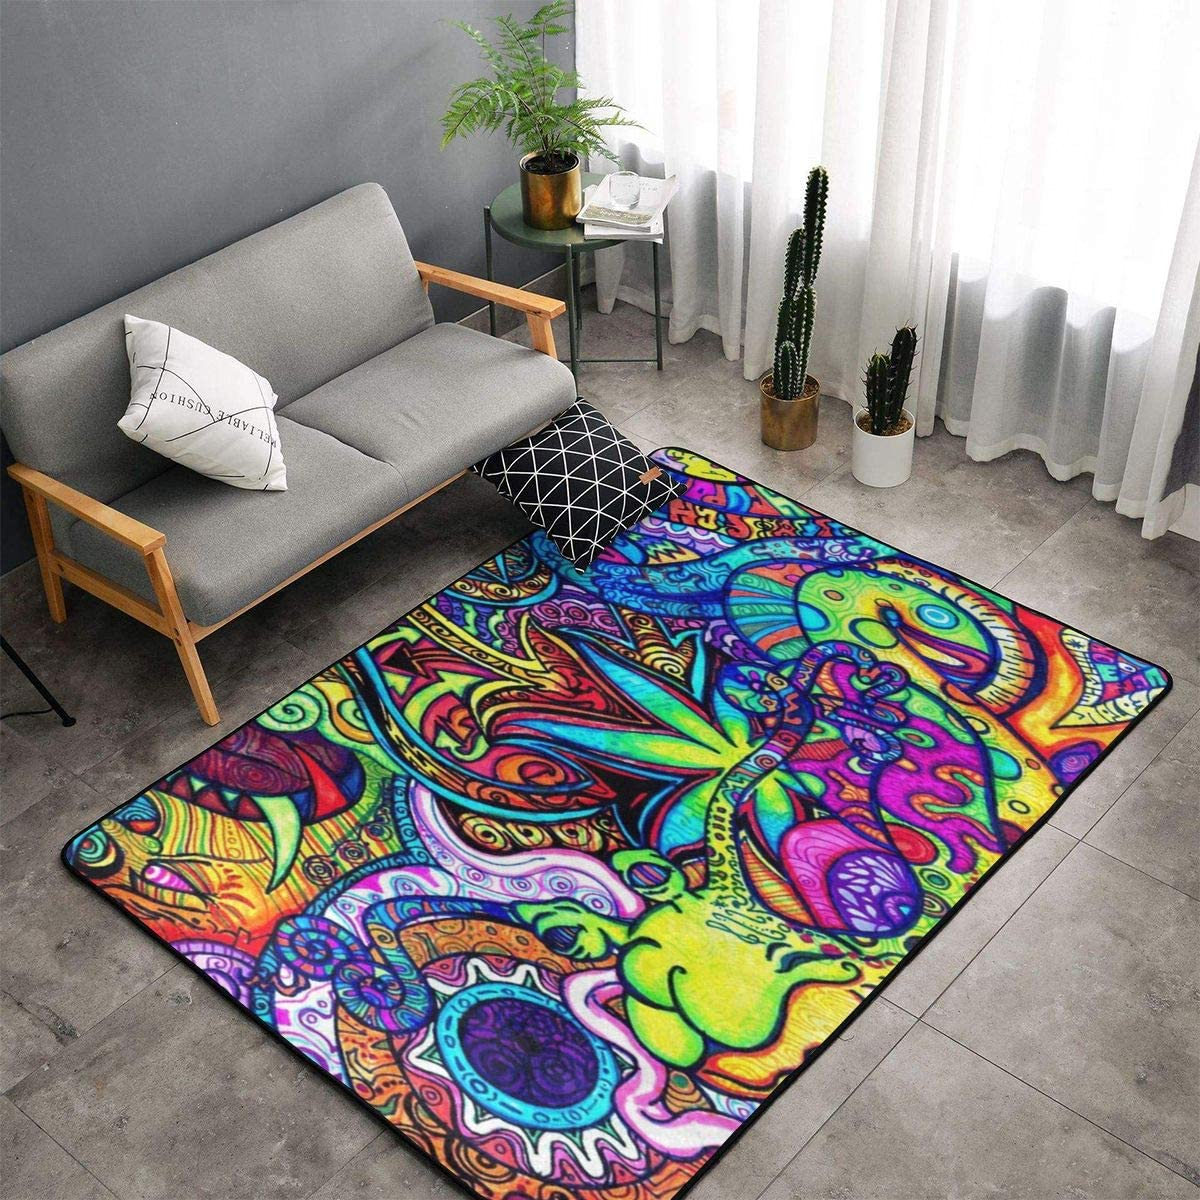 Bedroom Livingroom Sitting-Room Big Size Kitchen Rugs Home Decor - Cool Weed Floral Floor Mat Doormats Fast Dry Toilet Bath Rug Exercise Mat Throw Rugs Carpet